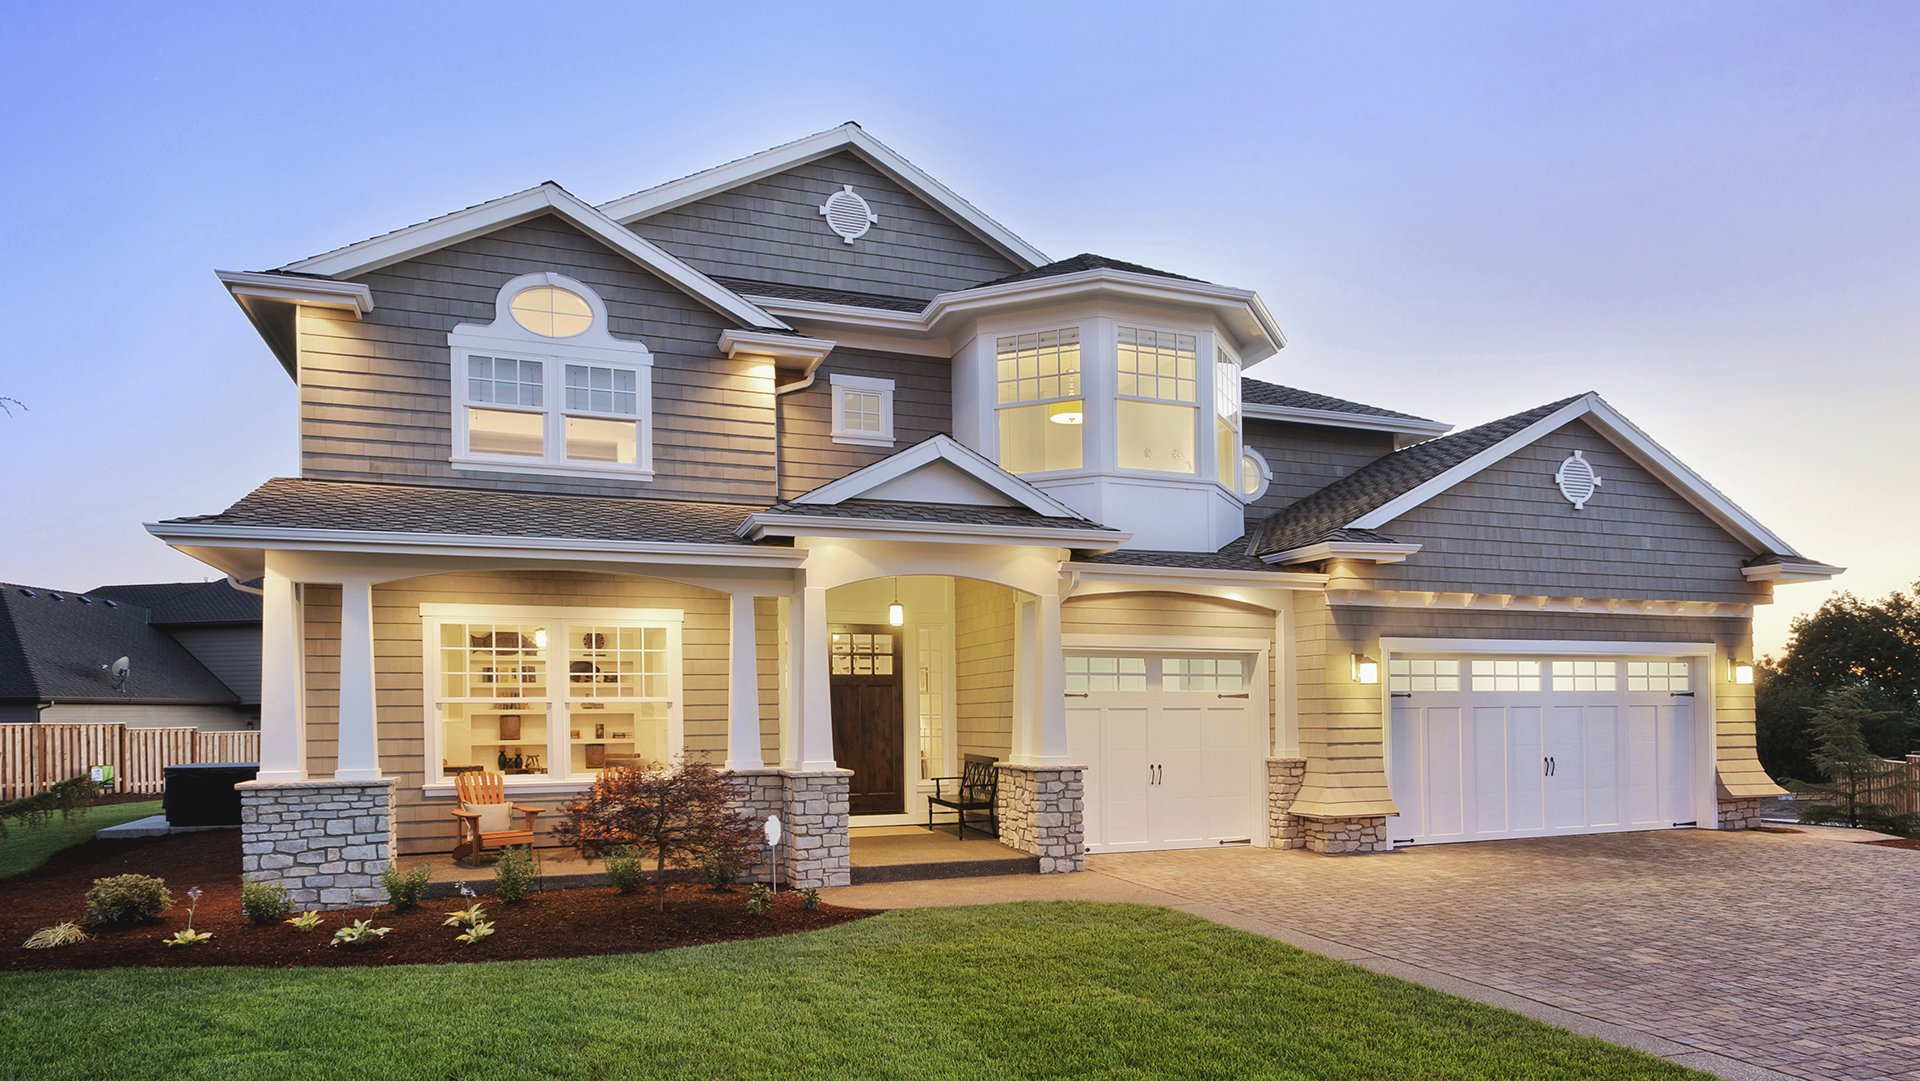 Accubuilt Homes Ltd Home Builder, Custom Home Builder and Home Remodeling Contractor